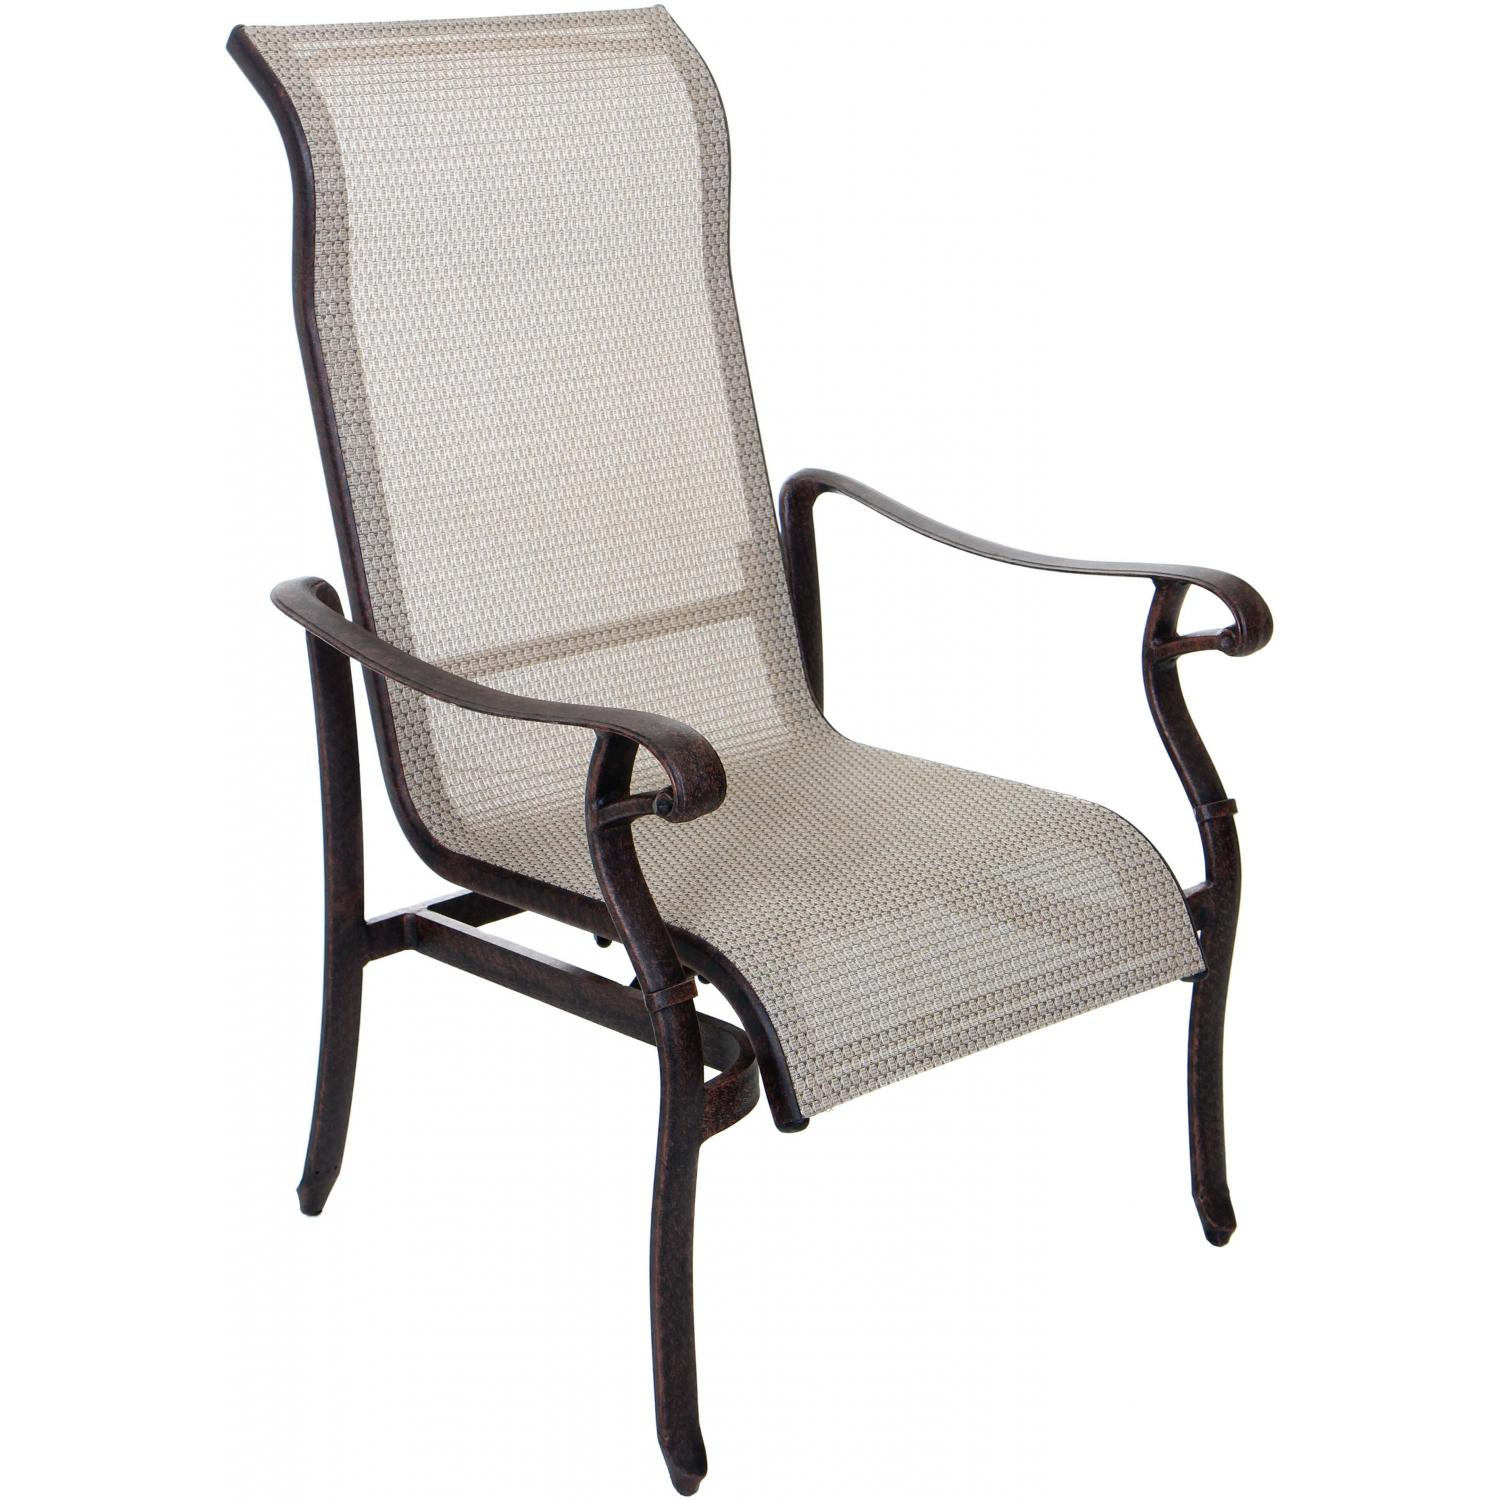 Image of: Patio Sling Chairs Ideas